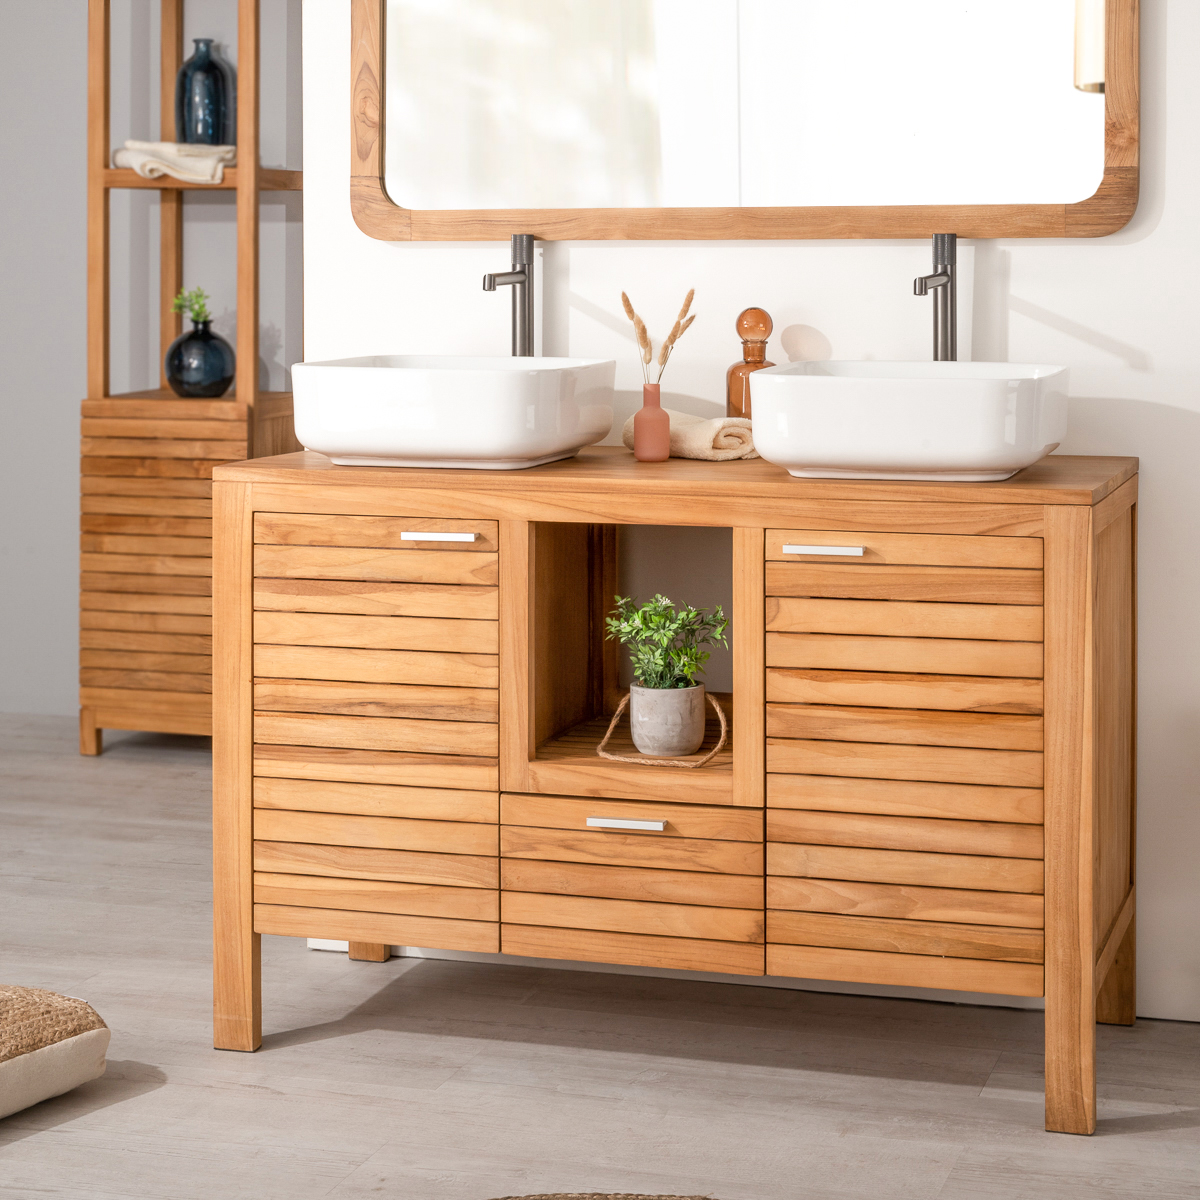 meuble sous vasque double vasque en bois teck massif courchevel naturel l 120 cm. Black Bedroom Furniture Sets. Home Design Ideas